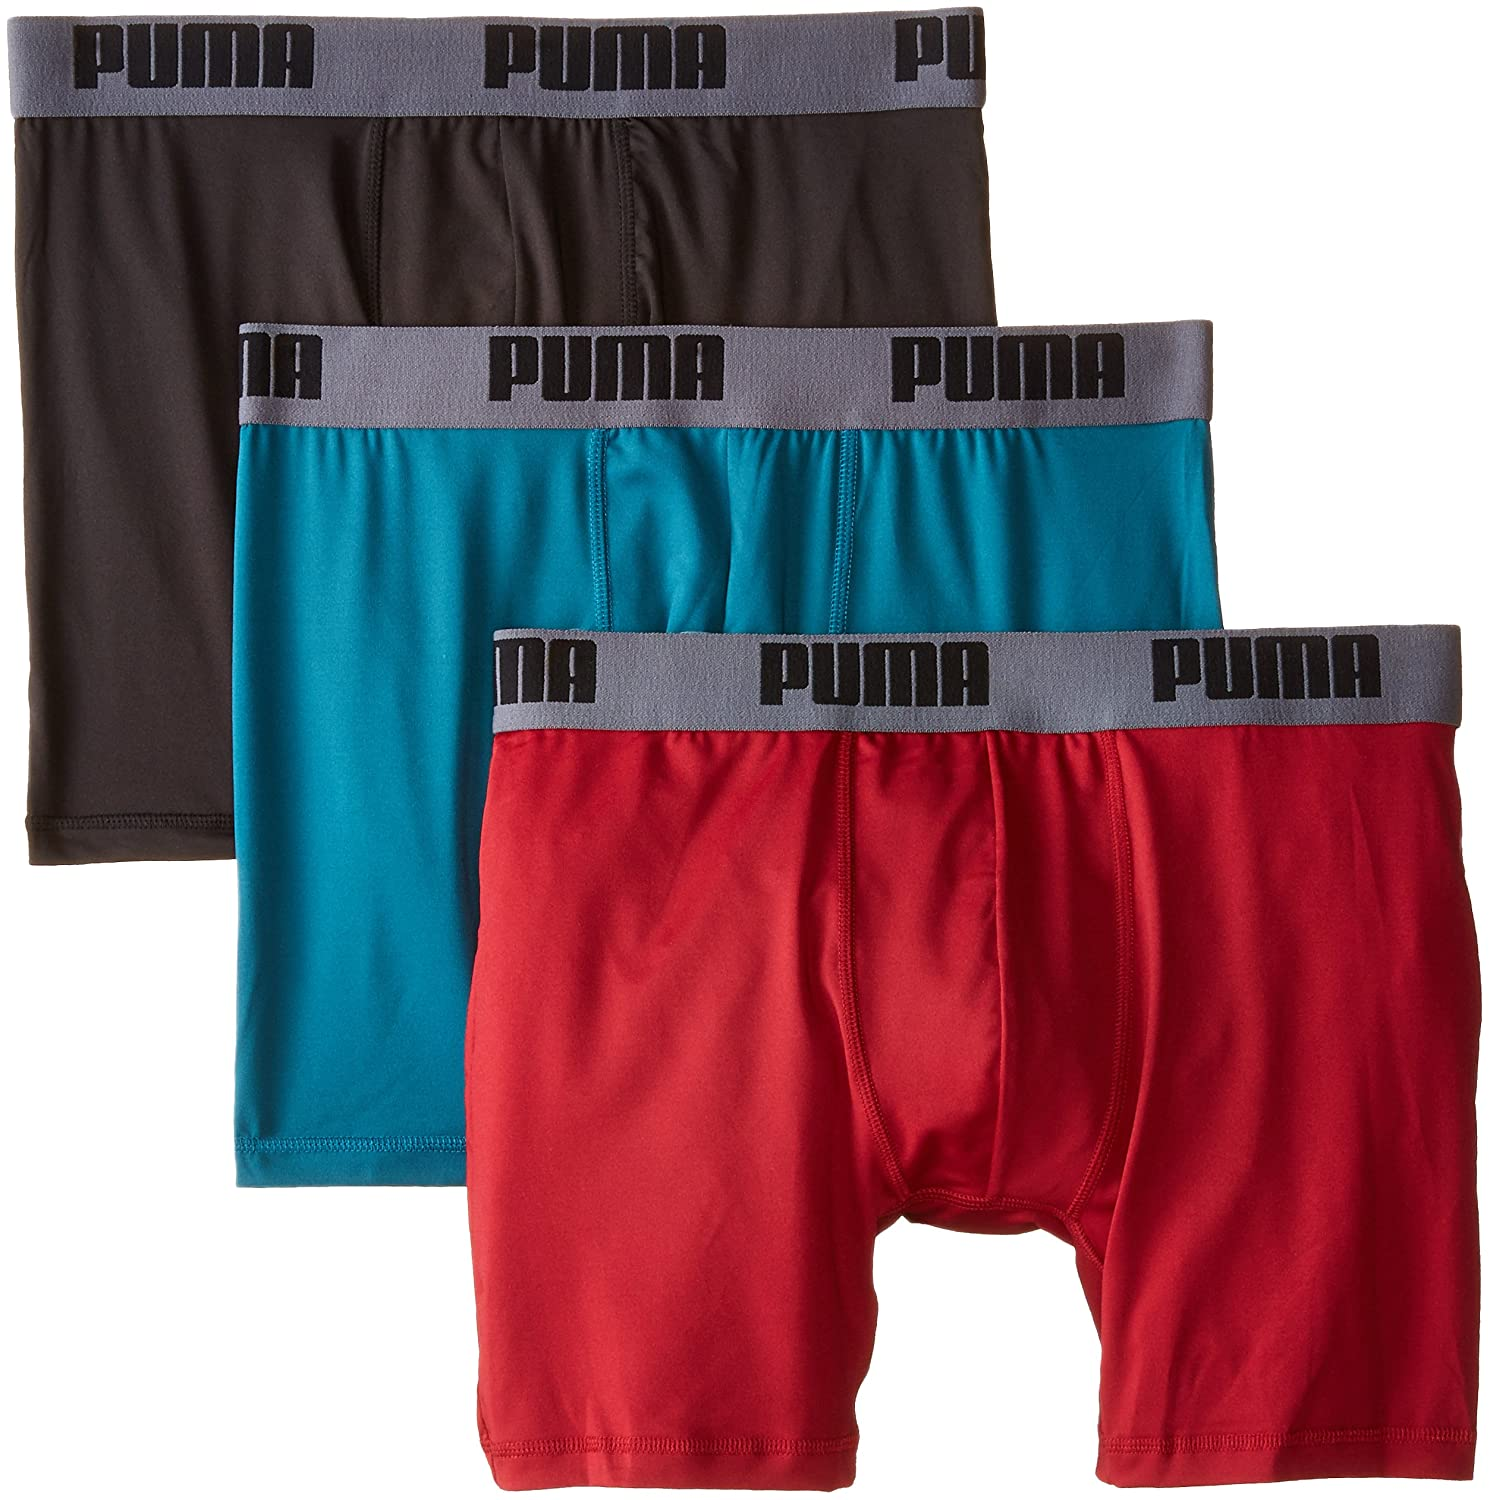 PUMA Mens 3 Pack Boxer Brief, Red/Grey/Teal, Large: Amazon.es: Ropa y accesorios